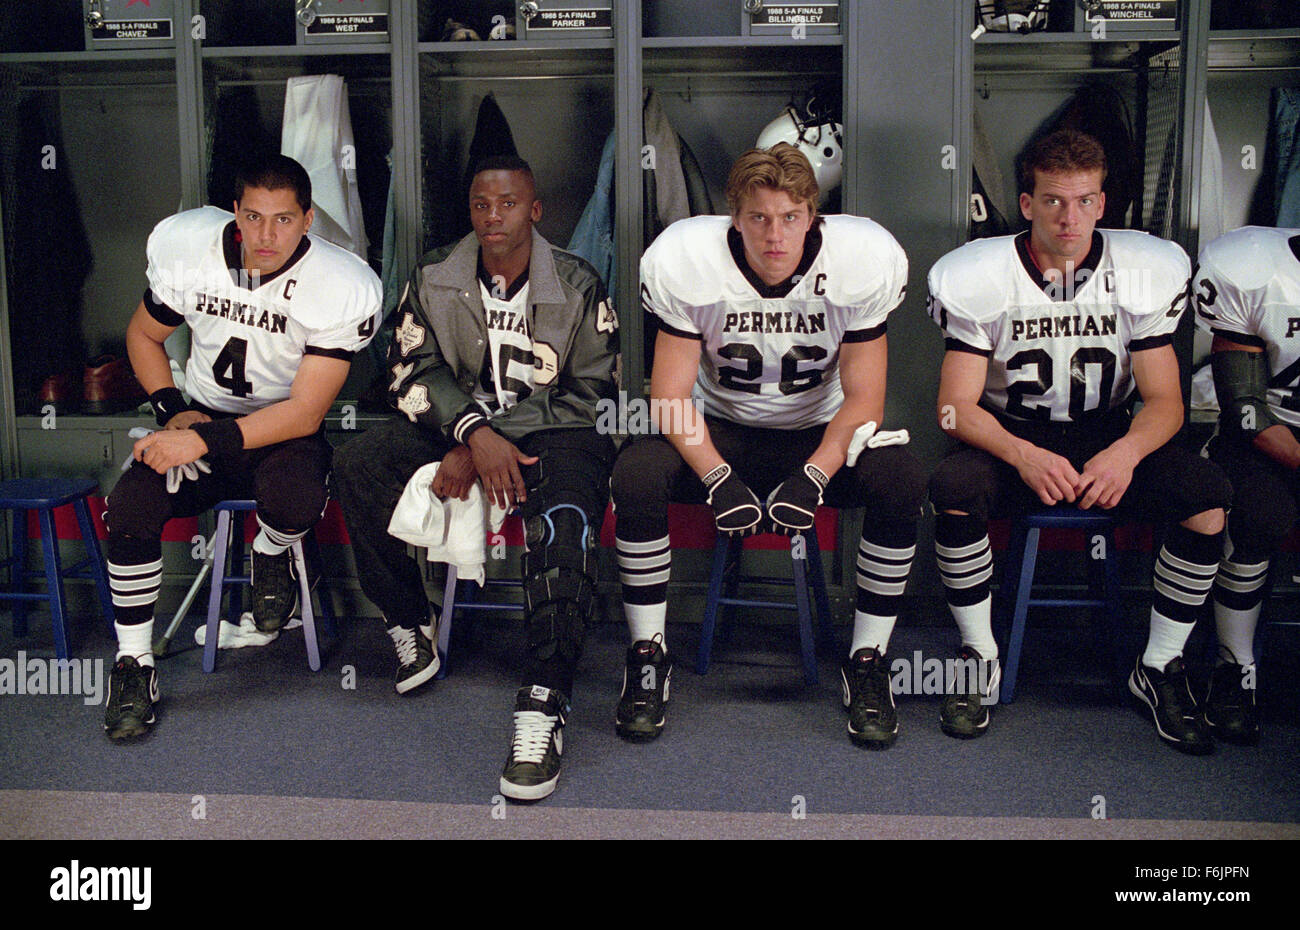 Release Date October 8 2004 Movie Title Friday Night Lights